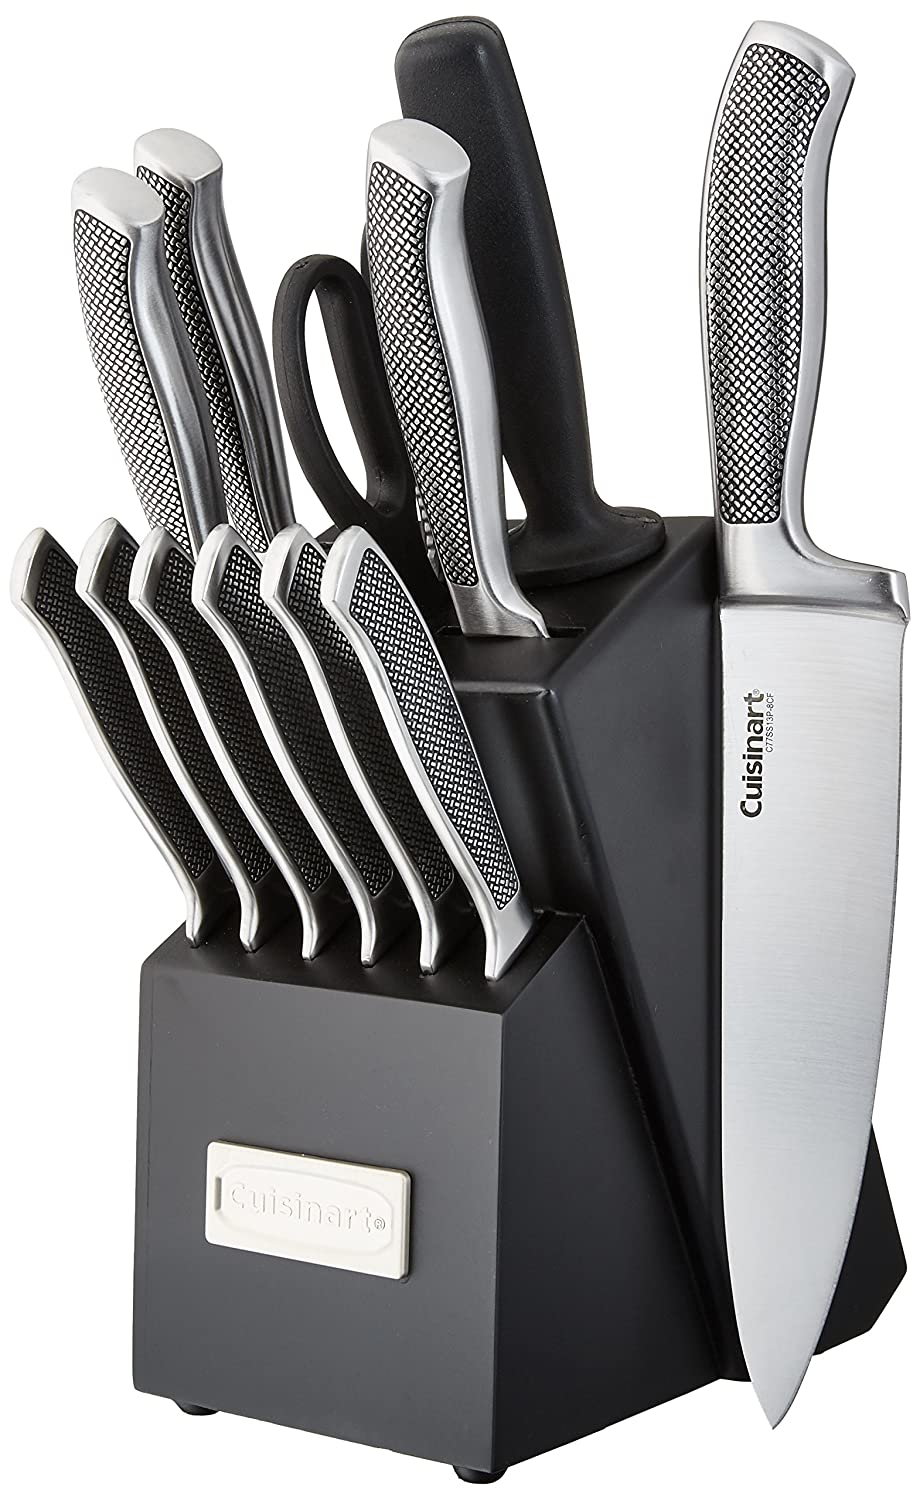 Cuisinart C77SS-15P Graphix Collection 15-Piece Cutlery Knife Block Set, Stainless Steel